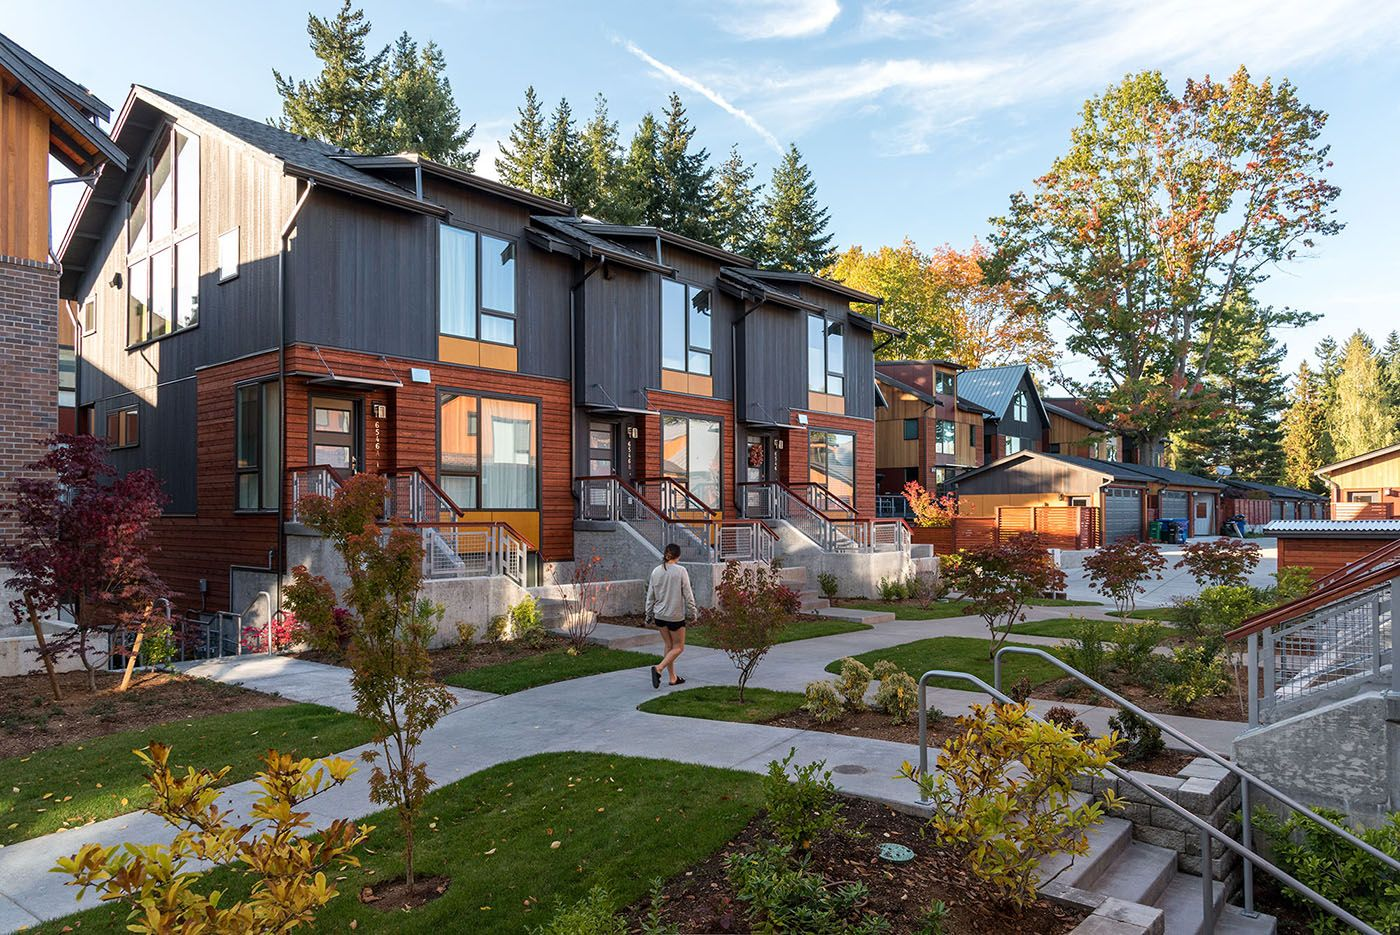 Bryant Heights In Seattle Has Houses Townhouses Condos Live Work Units And Commercial Space Ray And Mary Townhouse Designs Architecture Architecture Firm